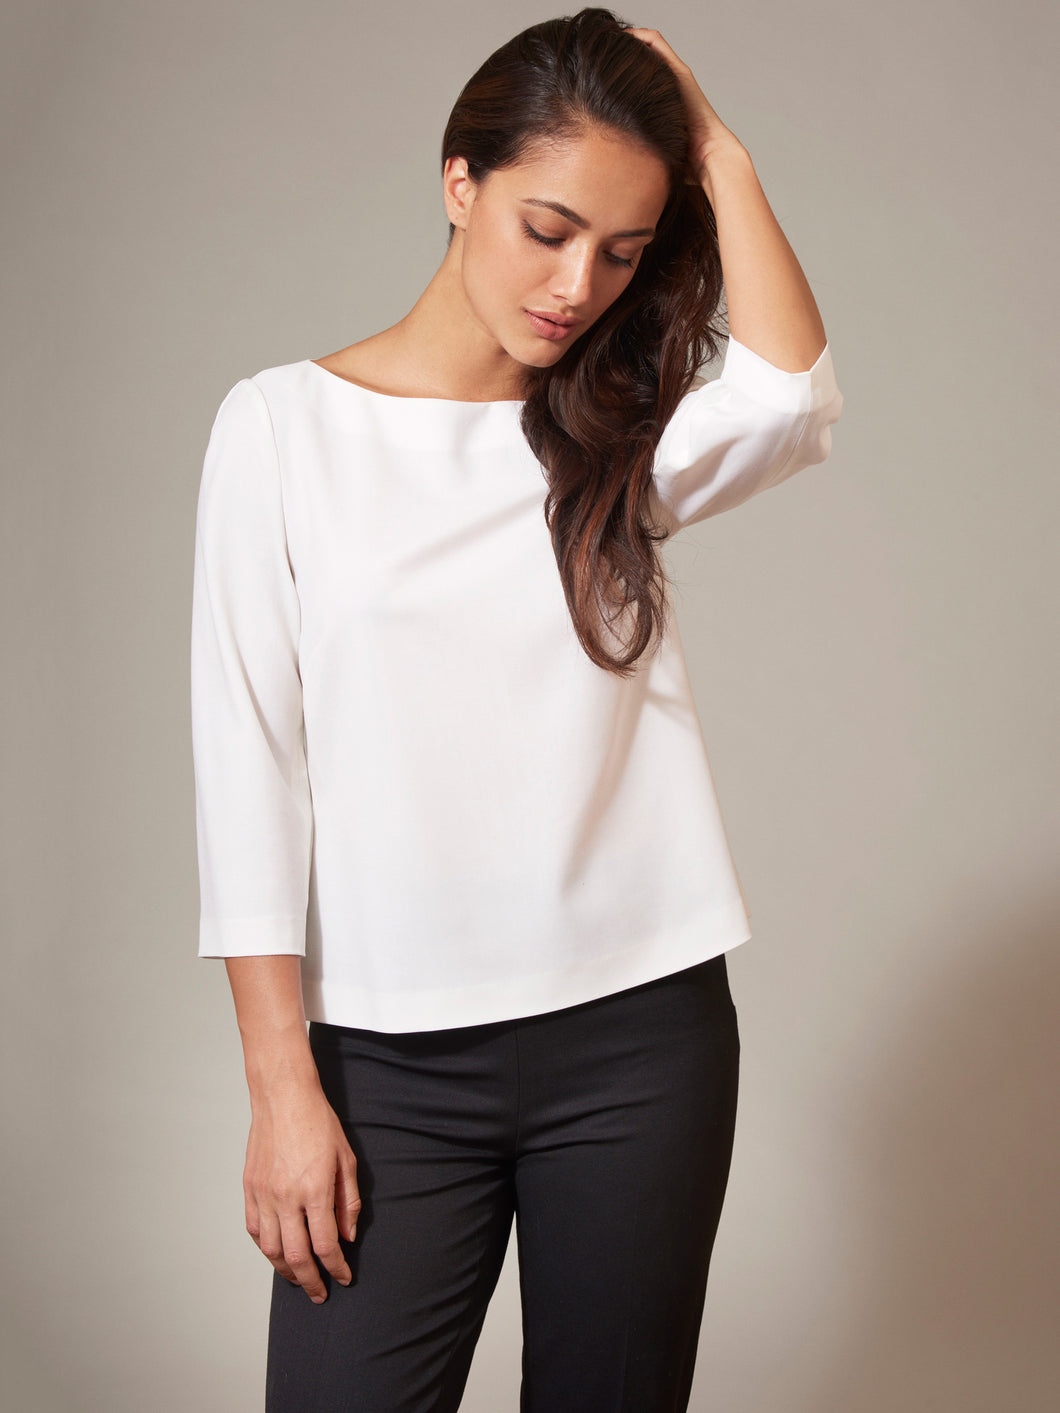 Women's white top in exquisite light weight fine wool